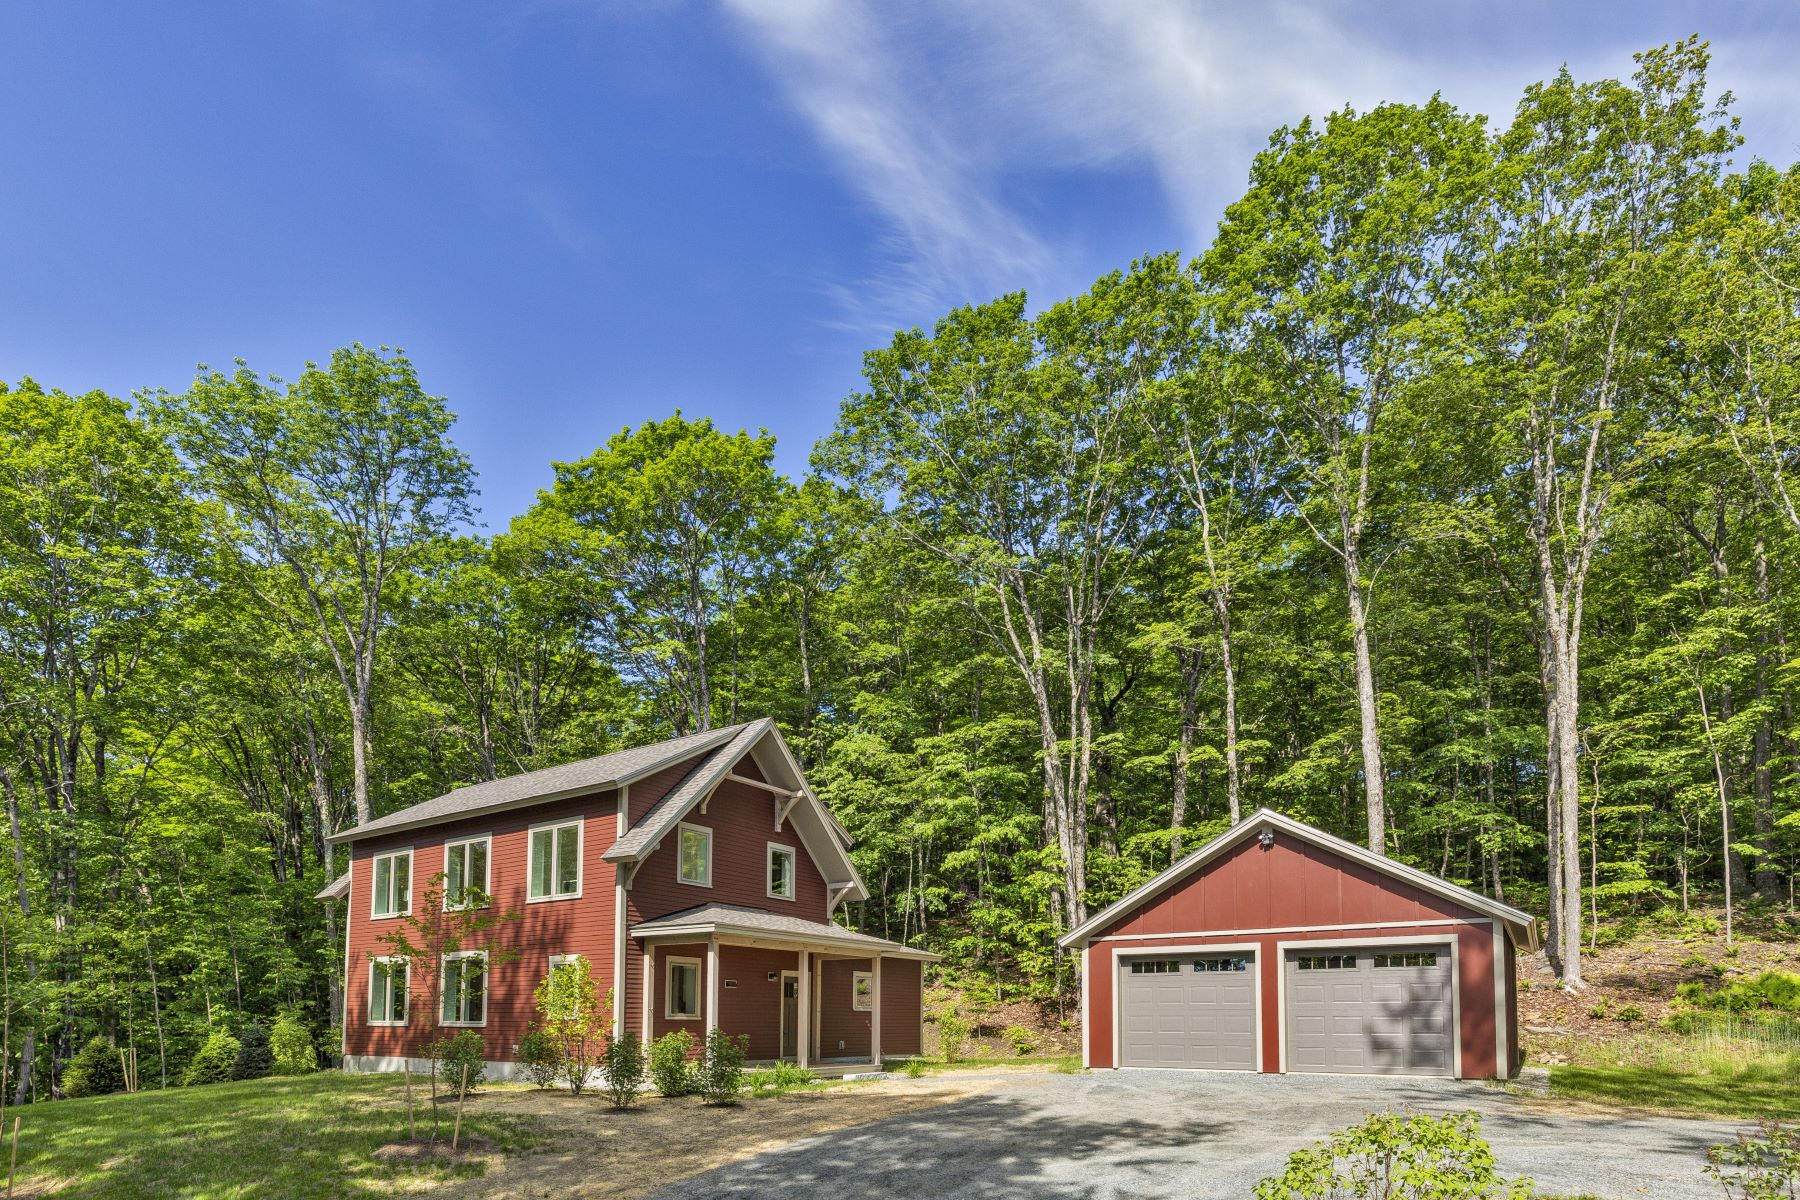 Single Family Homes for Sale at Three Bedroom Farmhouse in Quechee Lakes 1880 Willard Rd 5328 Hartford, Vermont 05059 United States